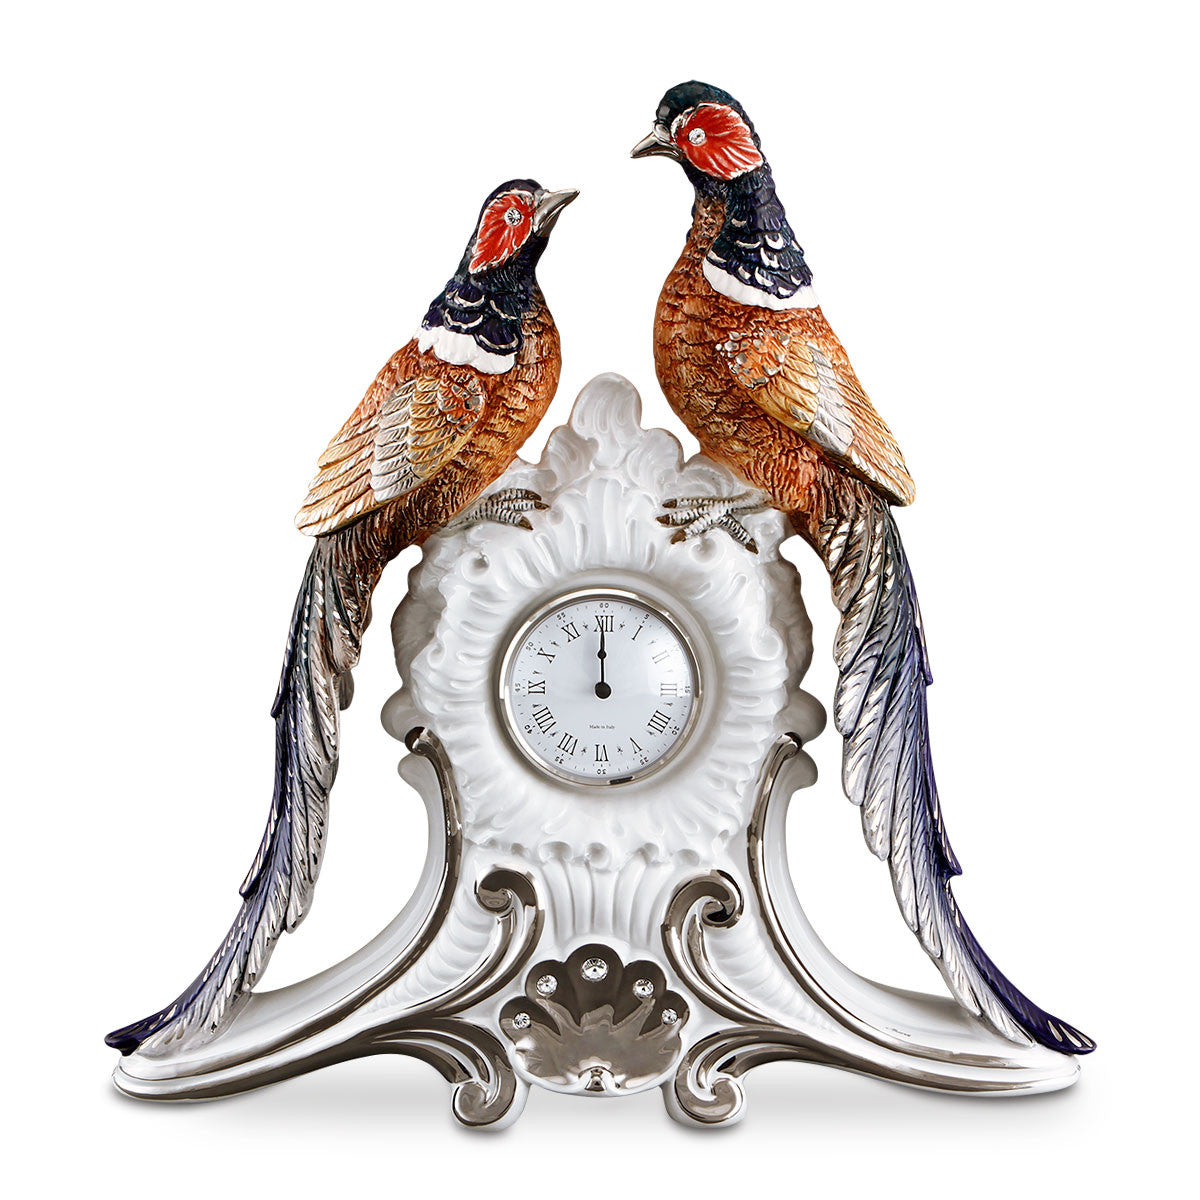 ceramic porcelain pheasants clock finished in platinum and colors with Swarovski handmade in Italy